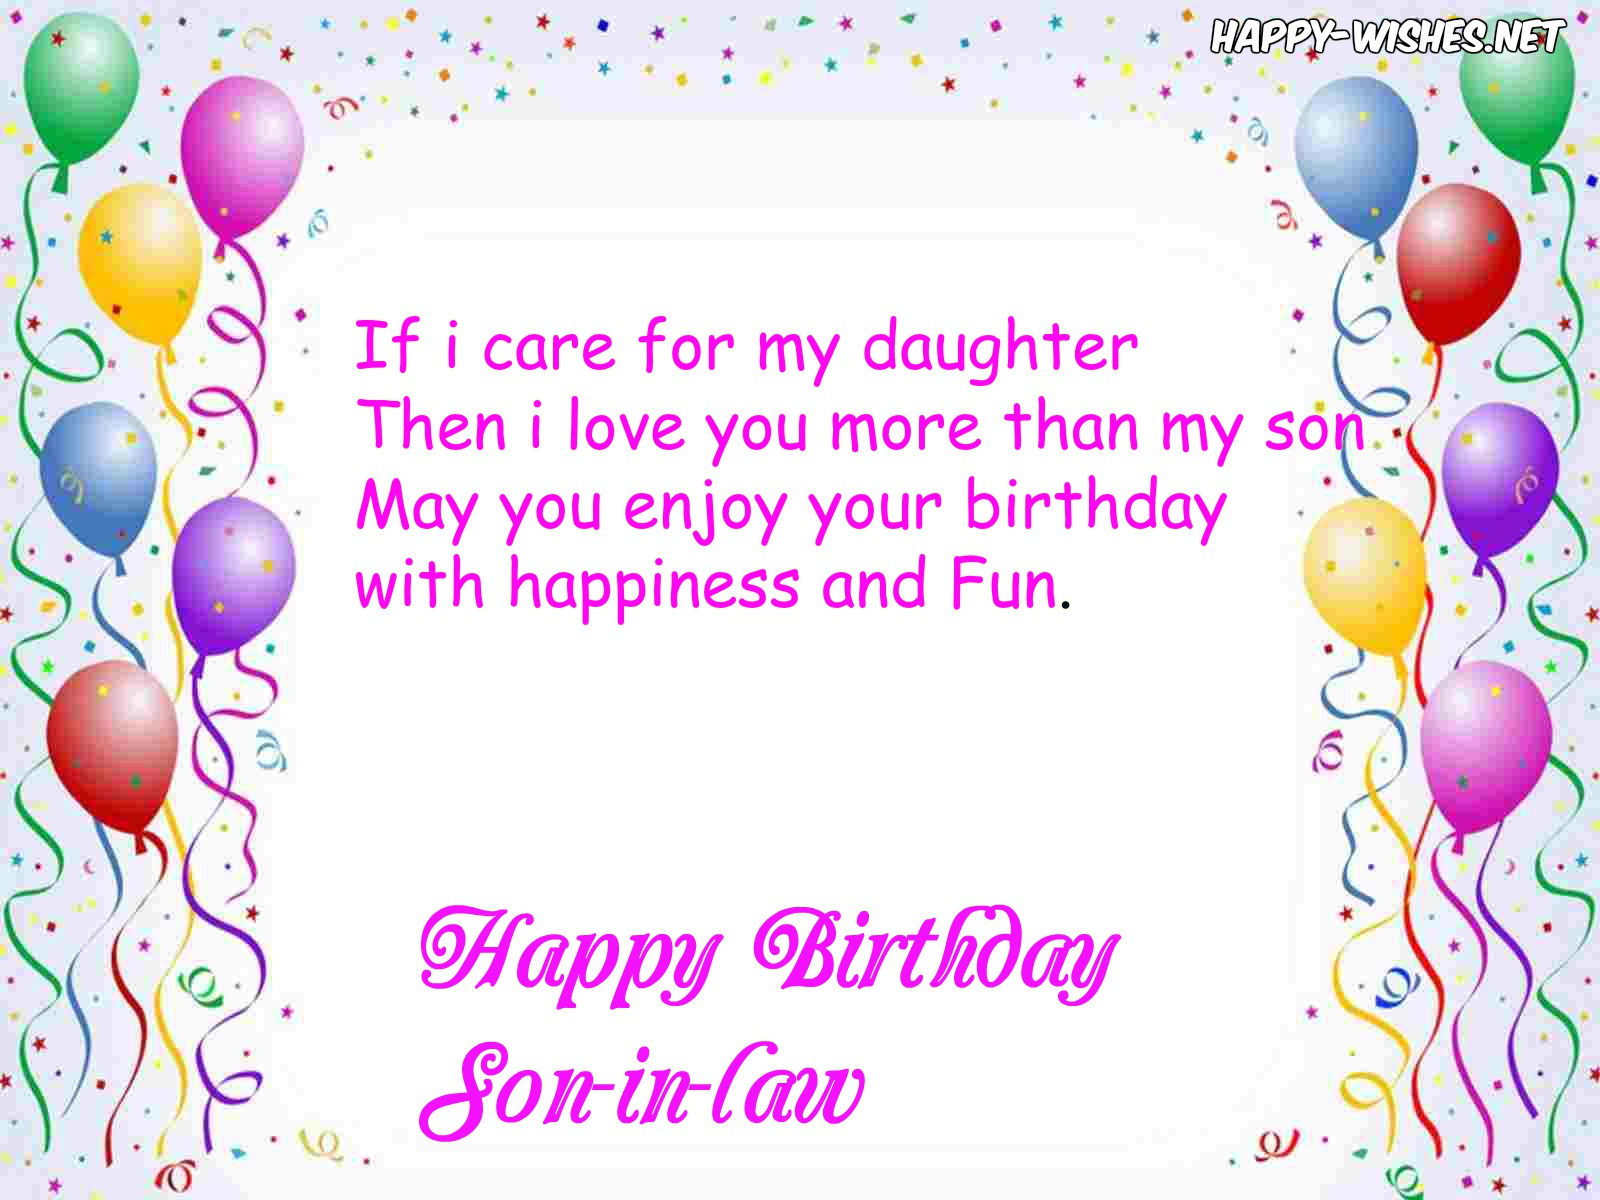 Swell Happy Birthday Wishes For Son In Law Quotes Messages Personalised Birthday Cards Veneteletsinfo